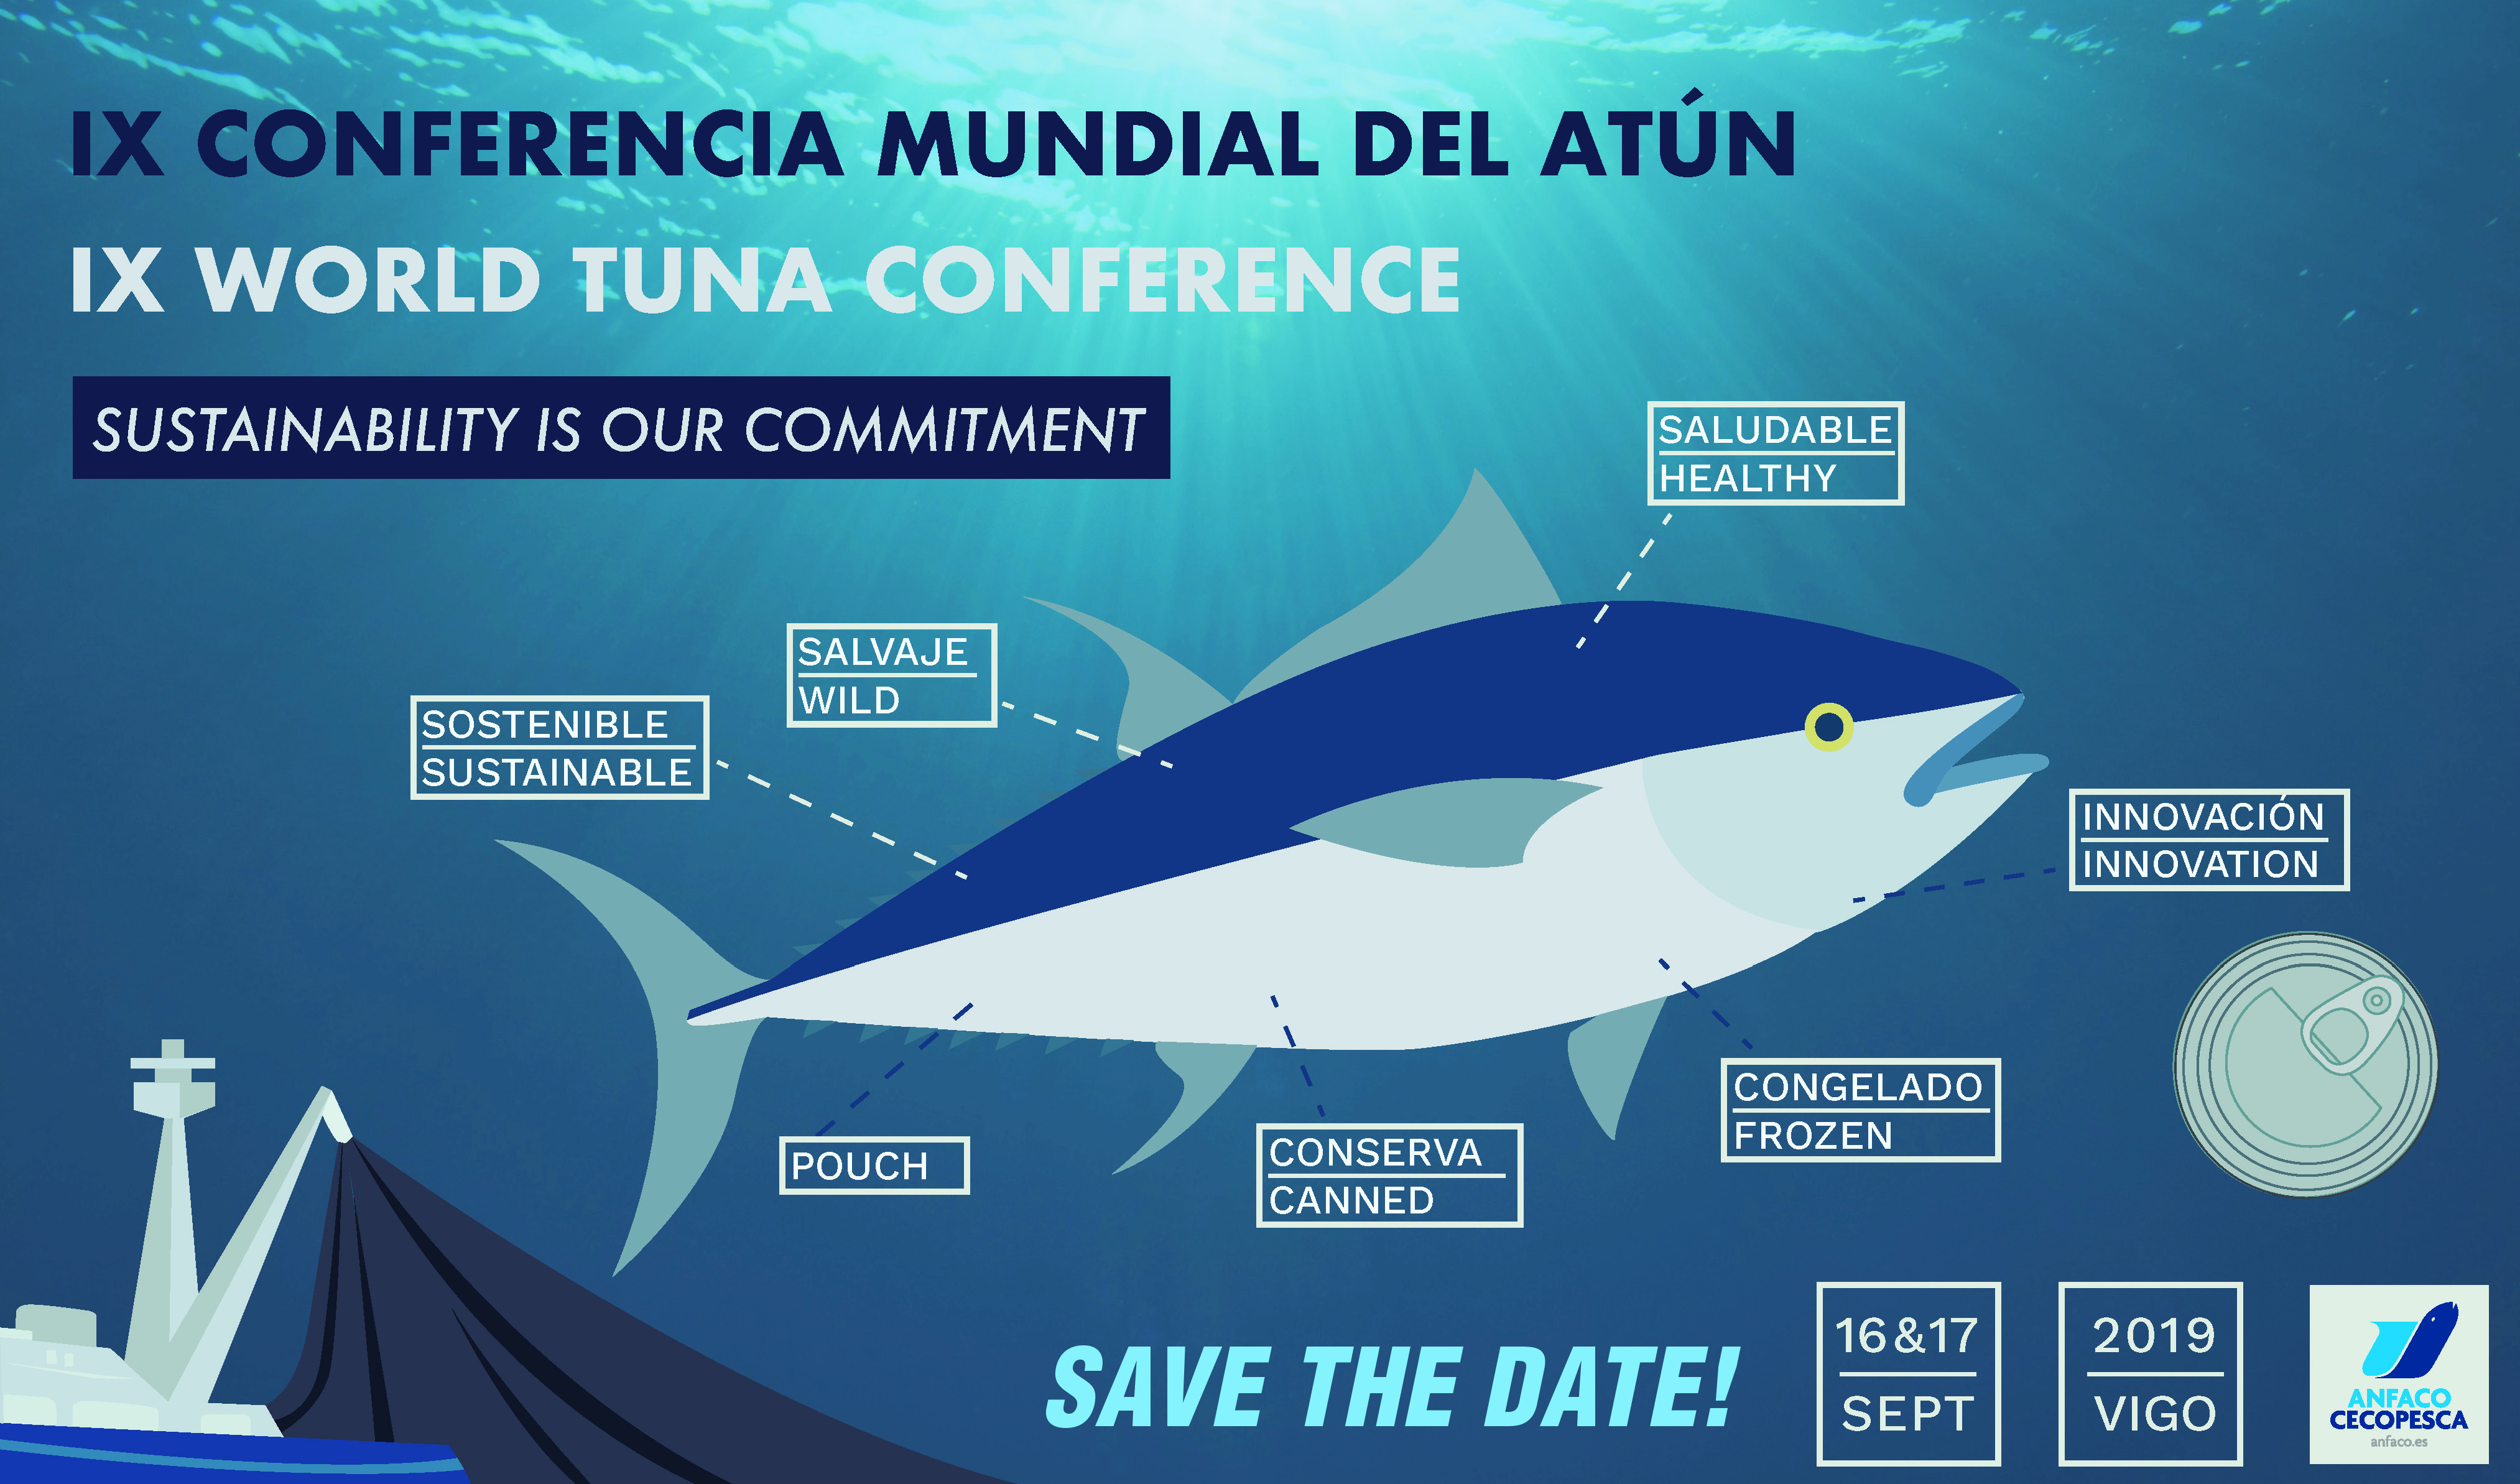 IX-World-Tuna-Conference-Vigo-2019